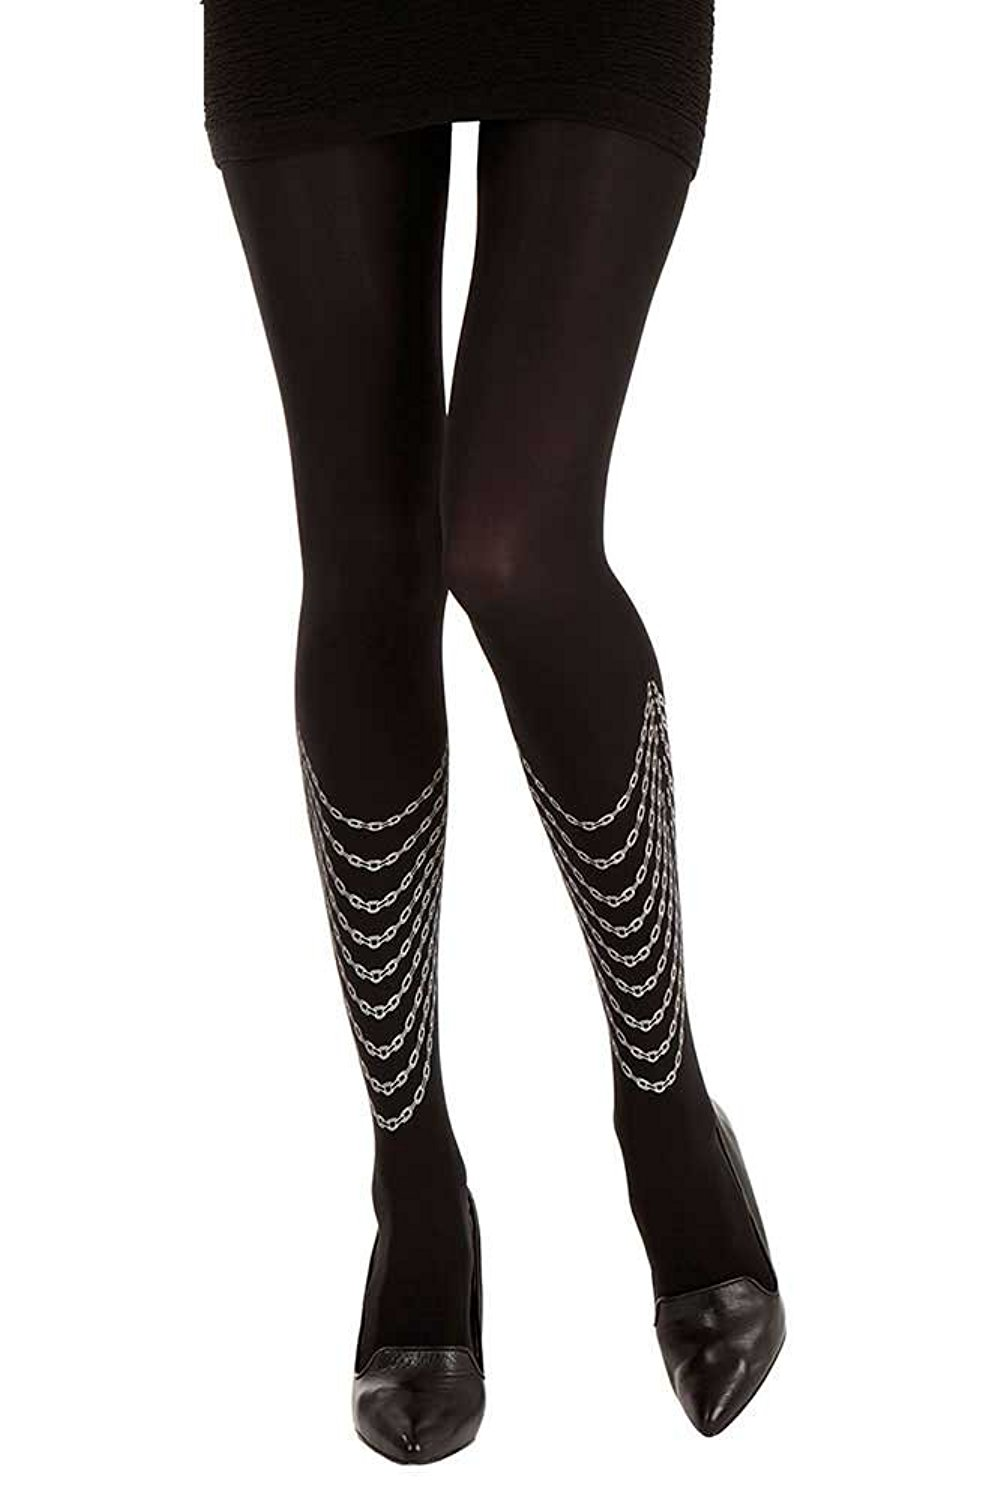 e7373596a Get Quotations · Loops Necklace Printed Tattoo Tights Black   Silver Opaque  by Zohara Tights